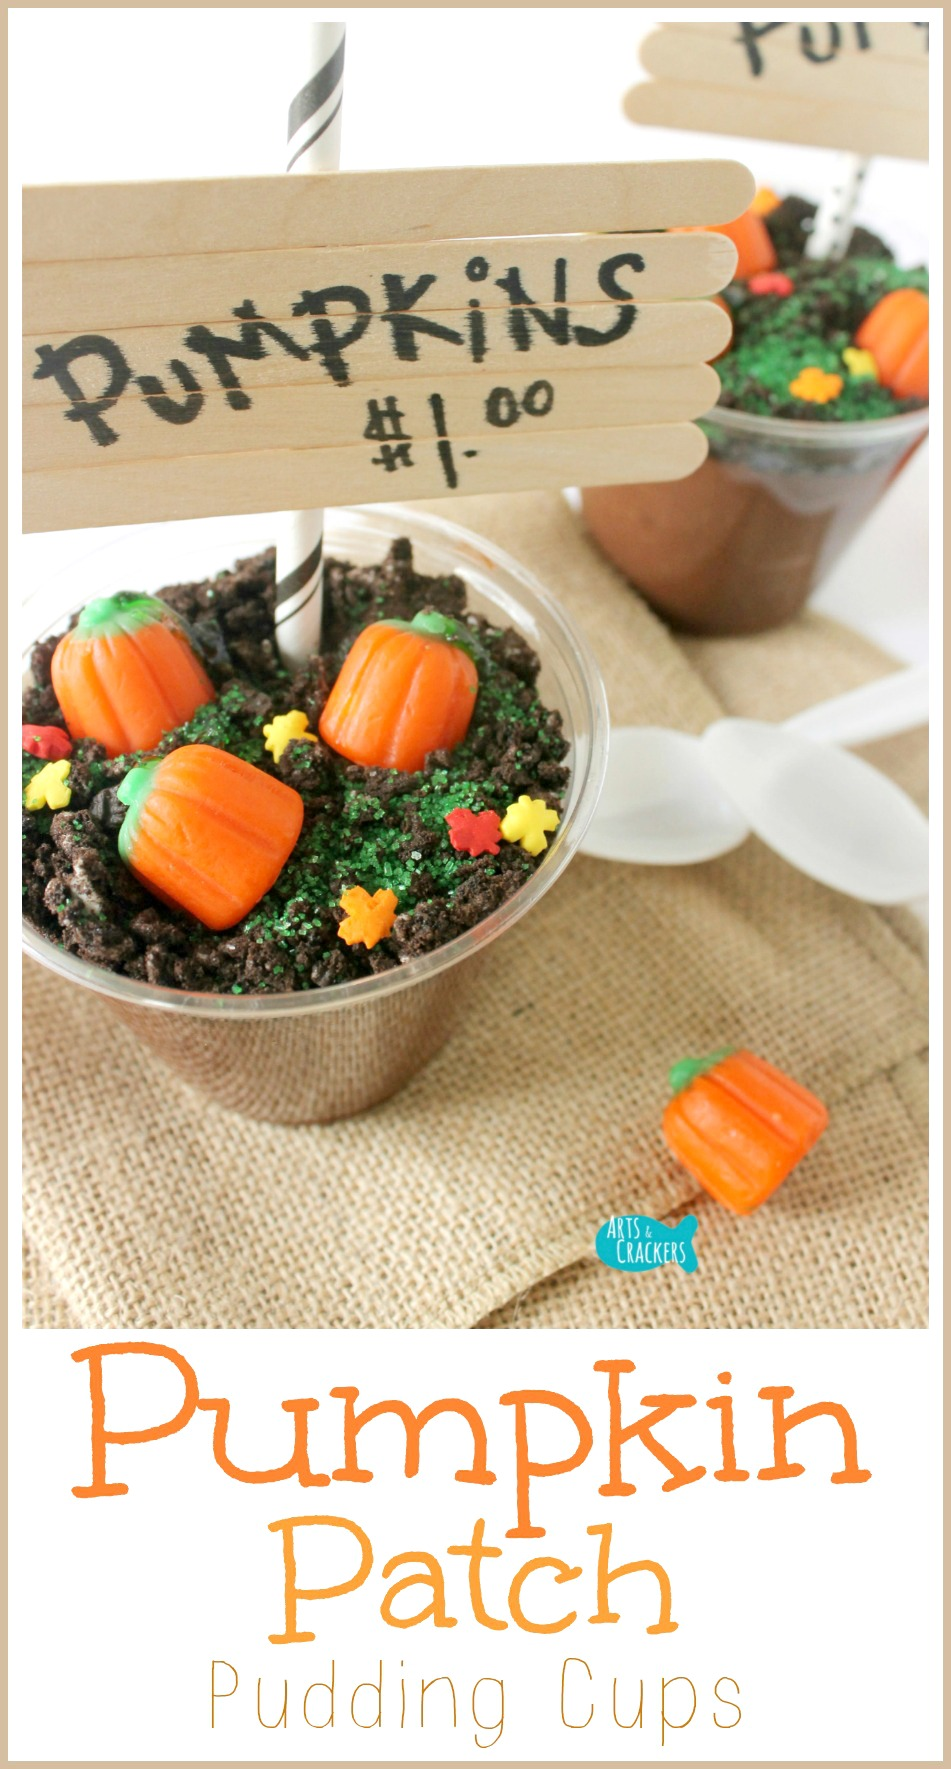 The original diy pumpkin patch pudding cups for fall and halloween - Making a pumpkin keg a seasonal diy project ...